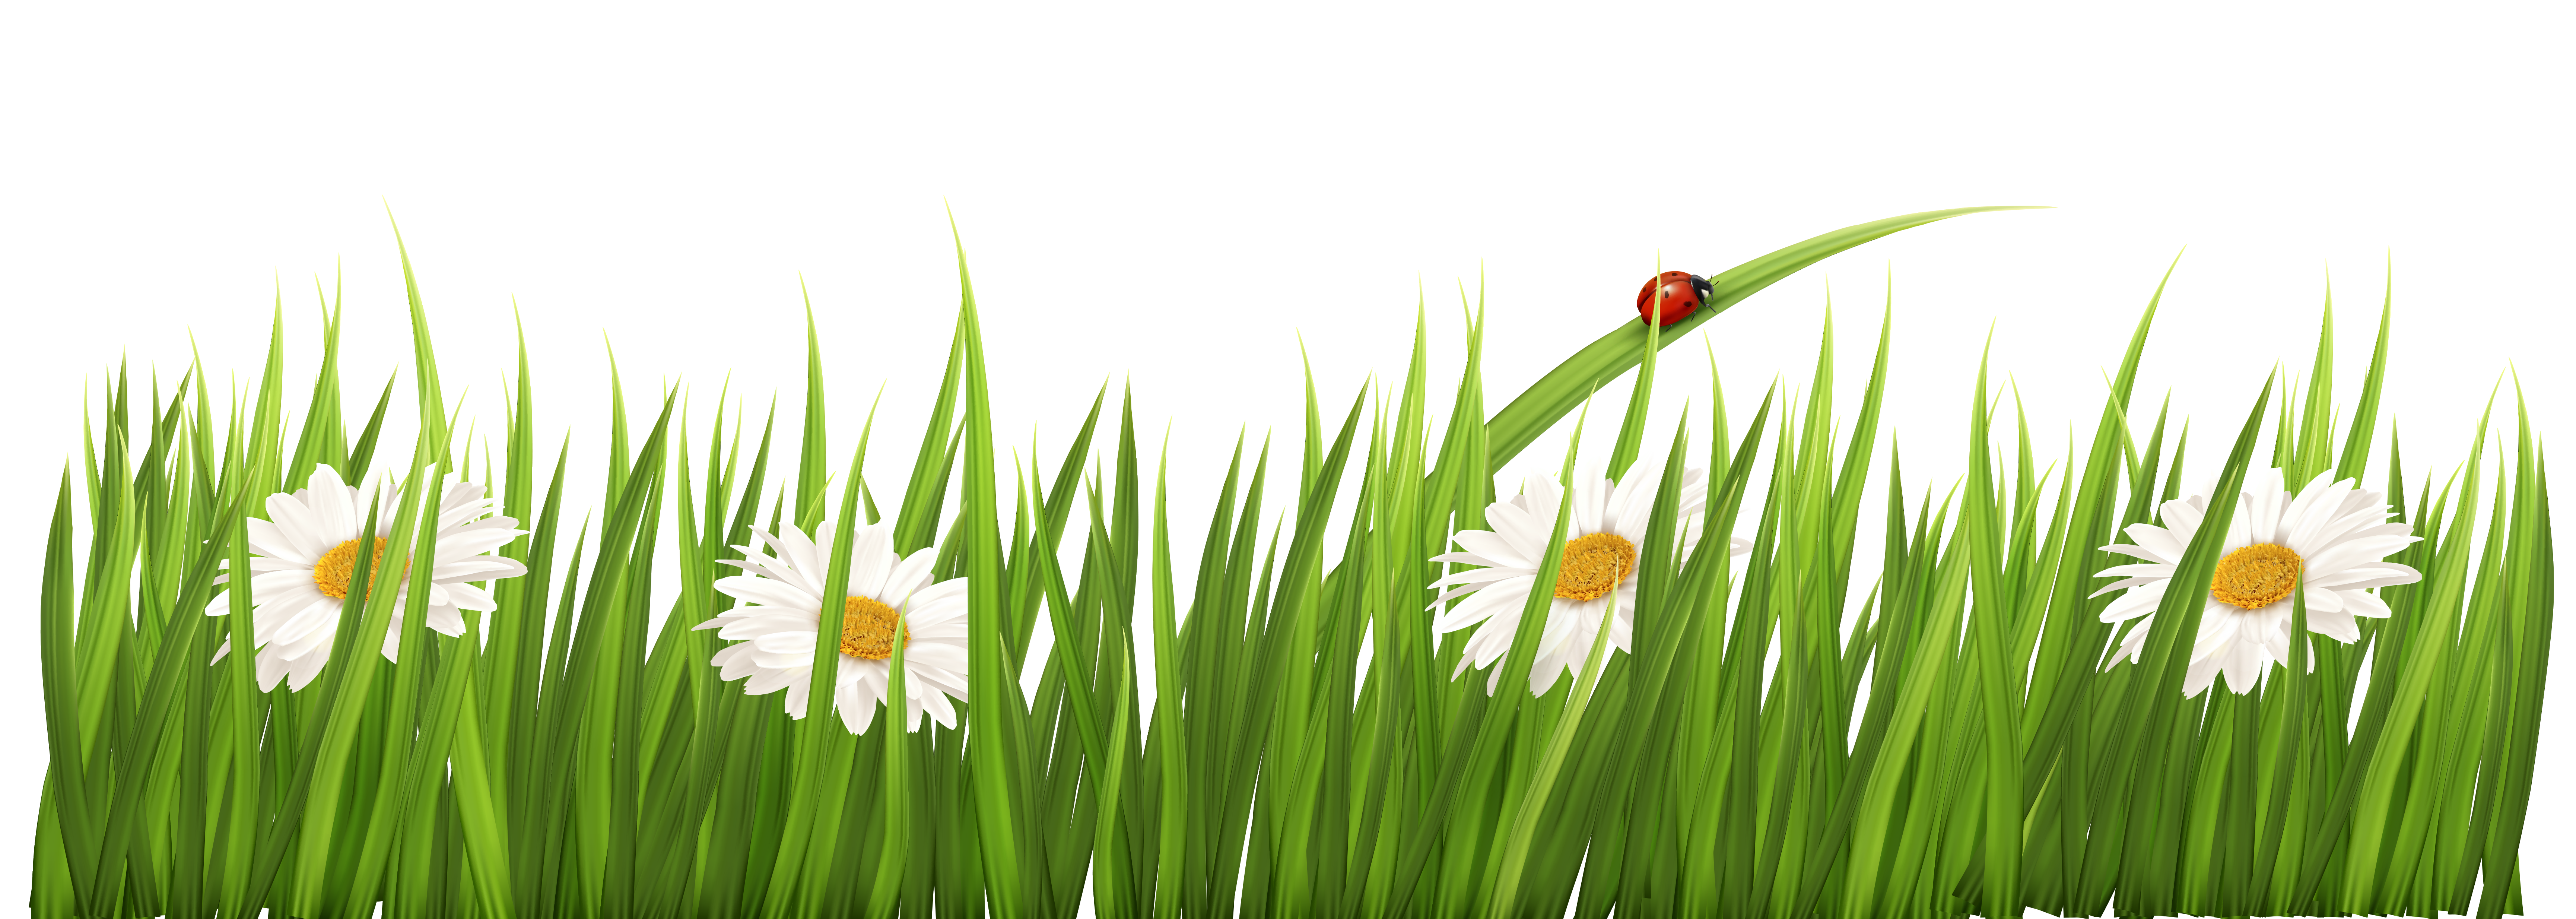 Free flower clipart with transparent background jpg library library White Flowers with Grass Transparent PNG Clipart jpg library library